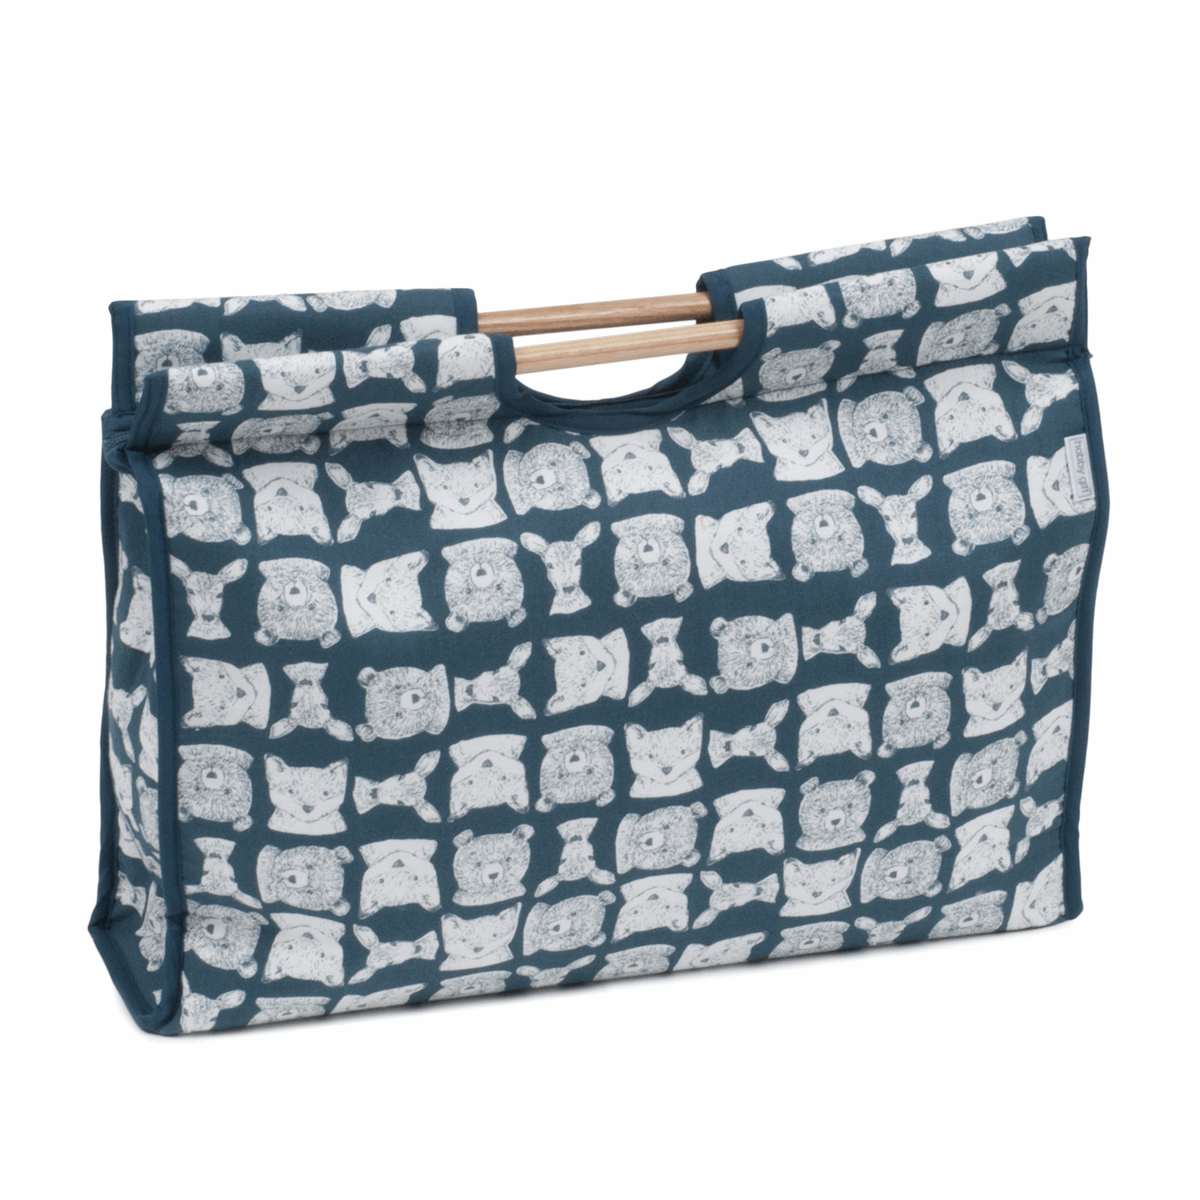 Picture of Craft Bag with Wooden Handles: Folkstone